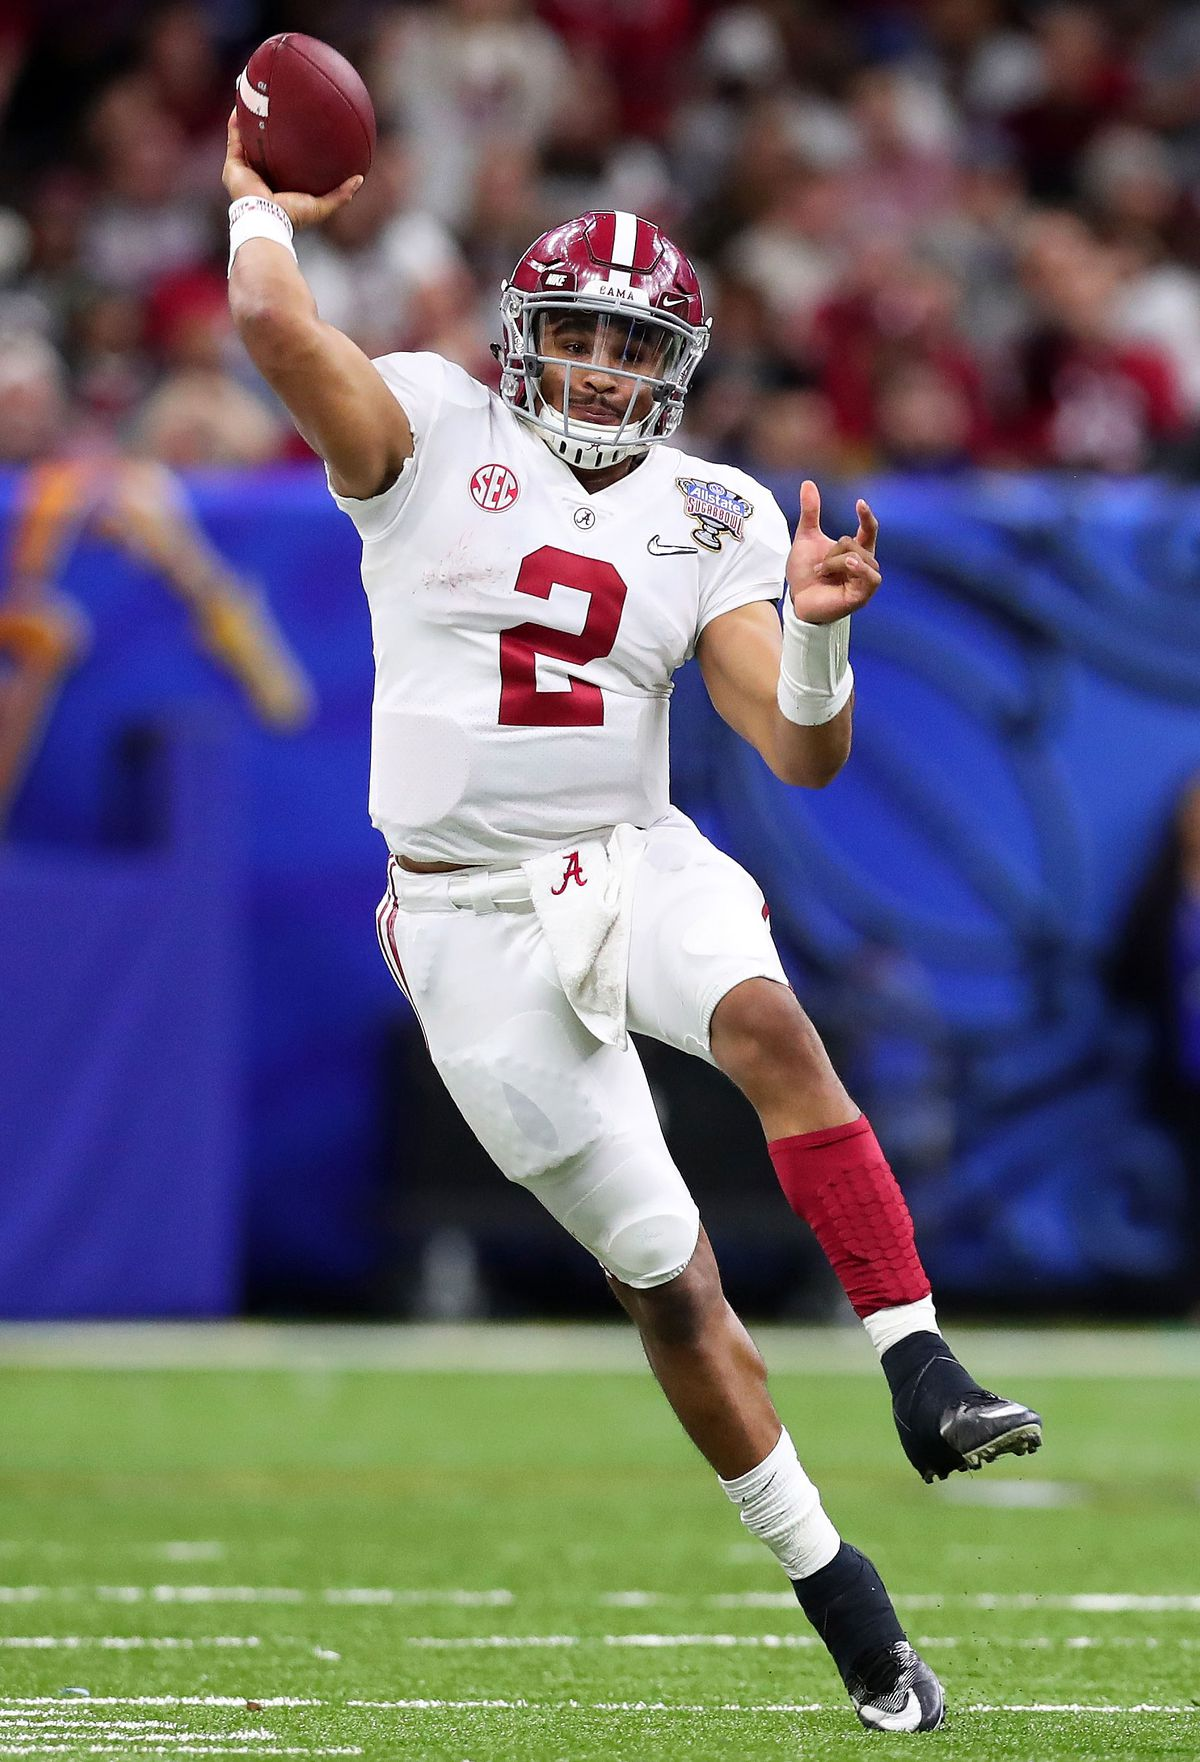 Jalen Hurts throwing the ball